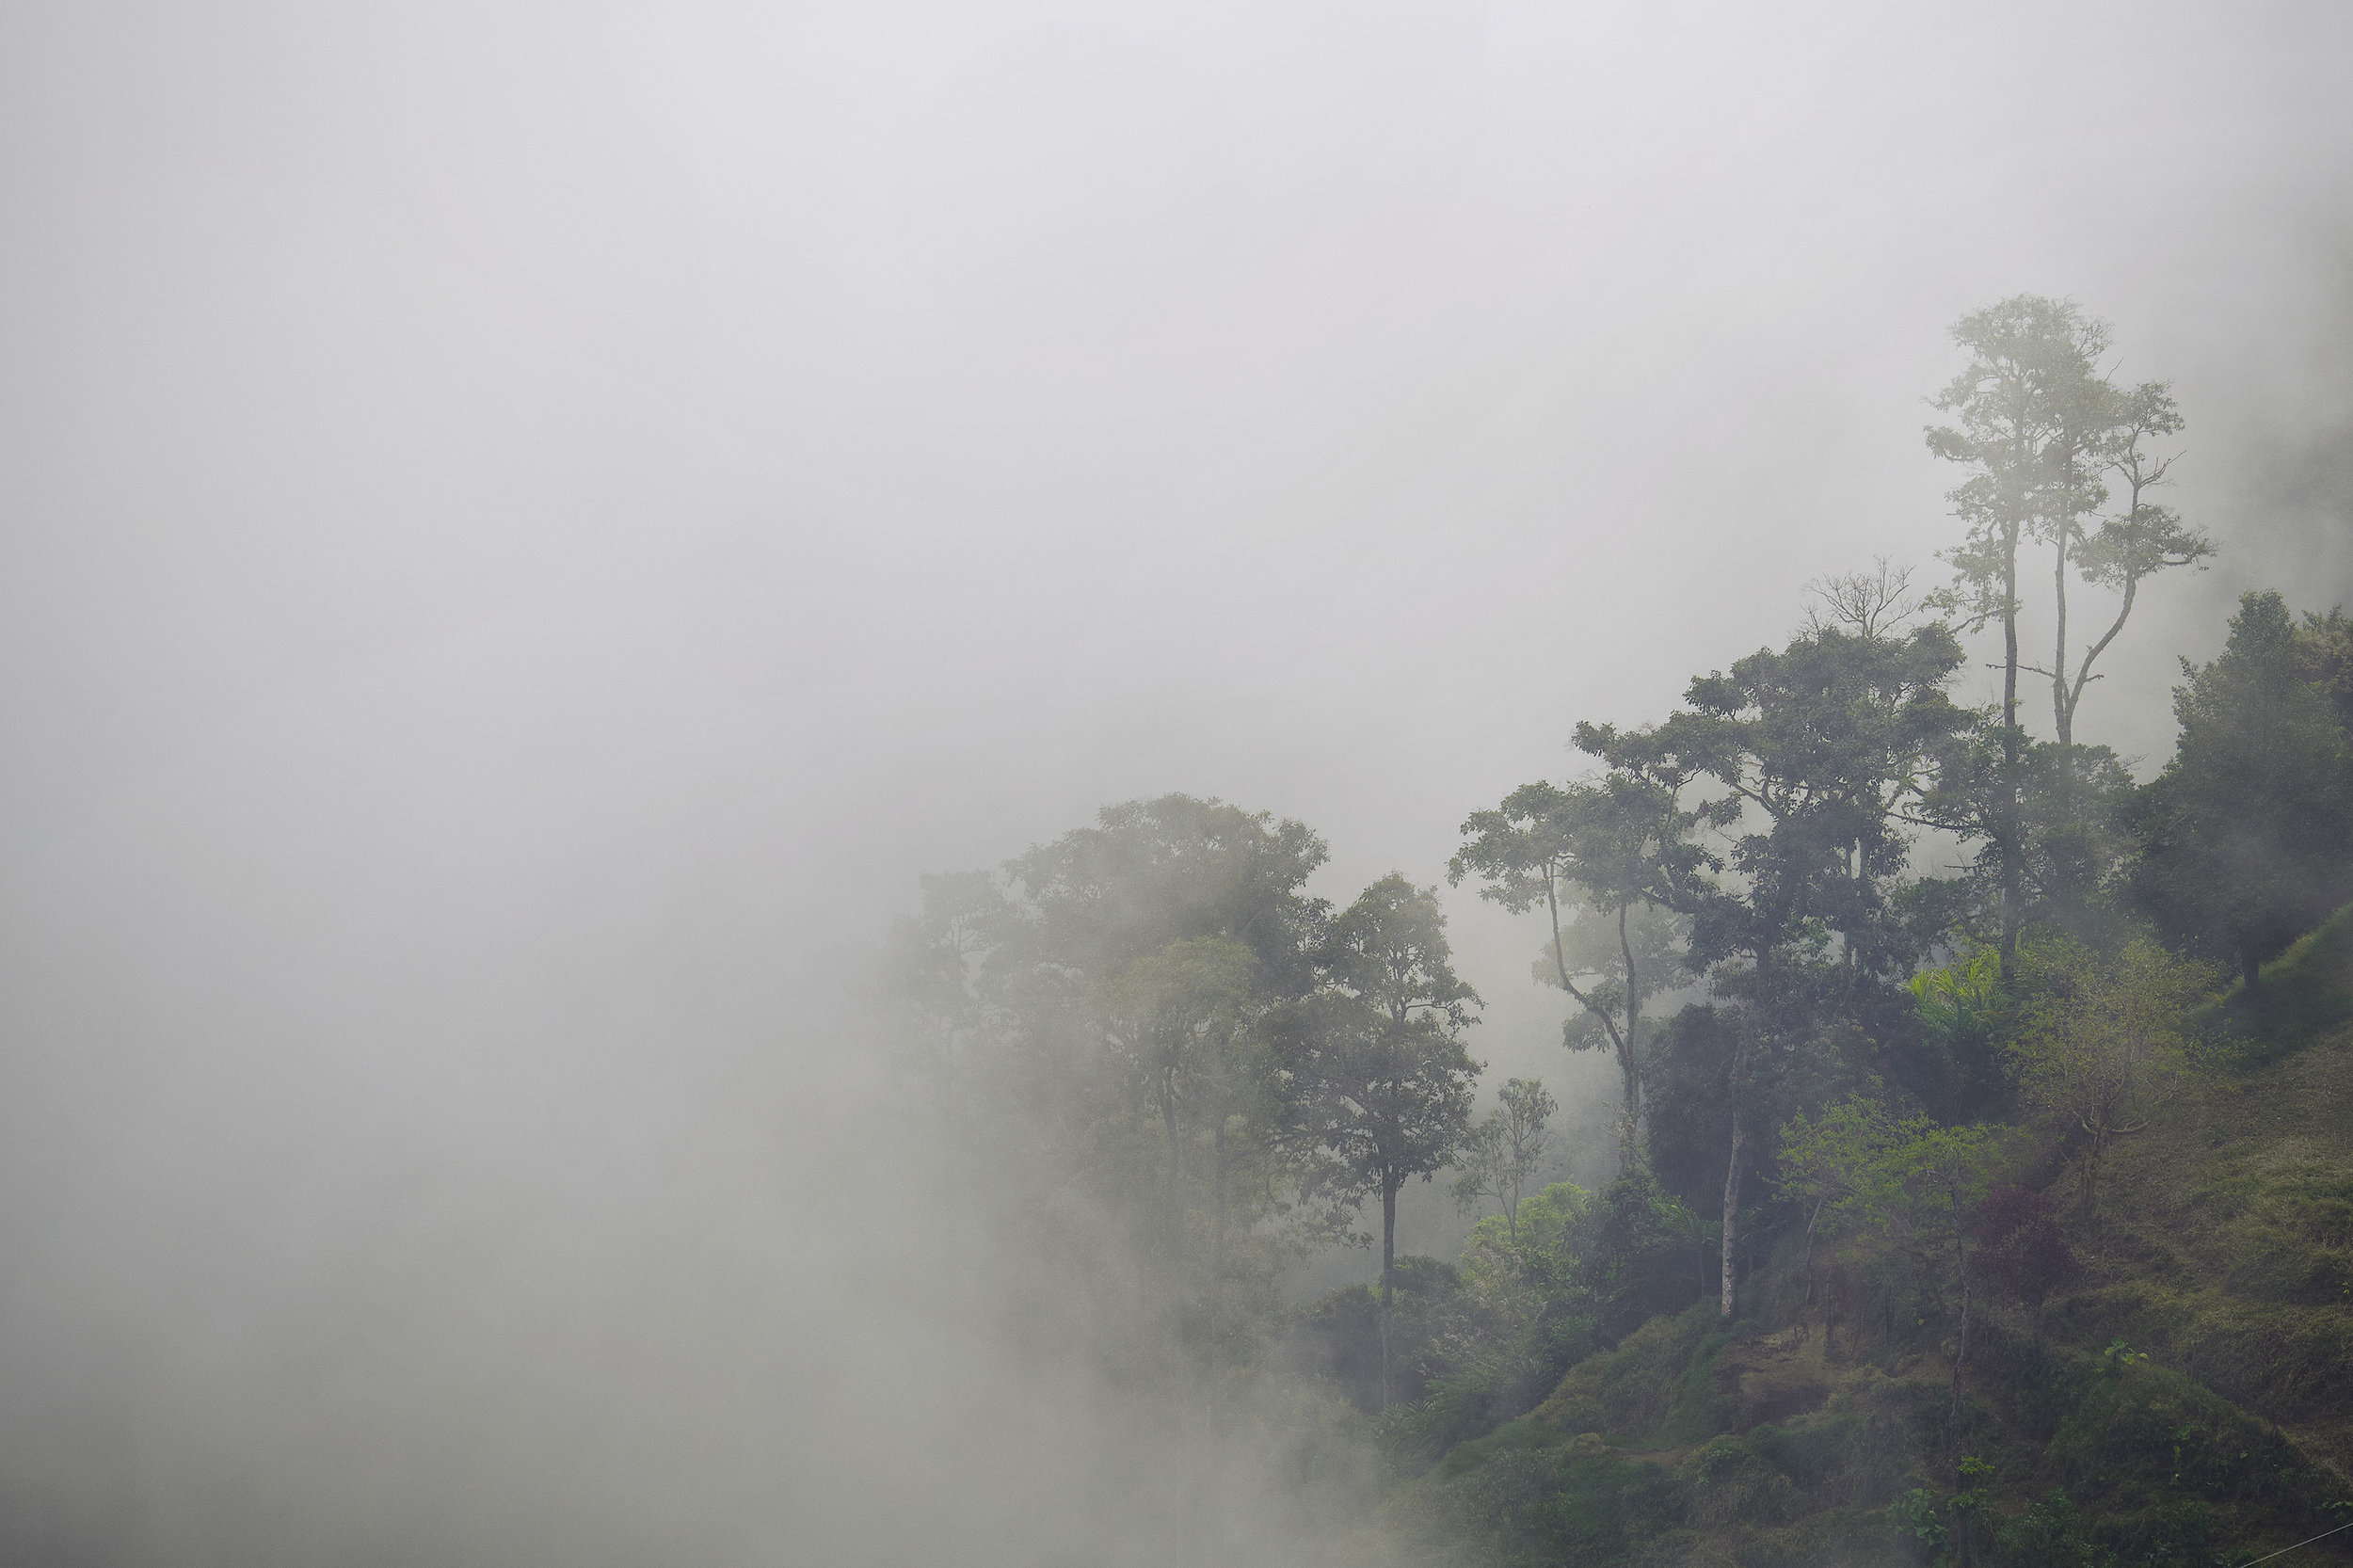 Colombia-travel-zona-cafetera-trees-in-fog